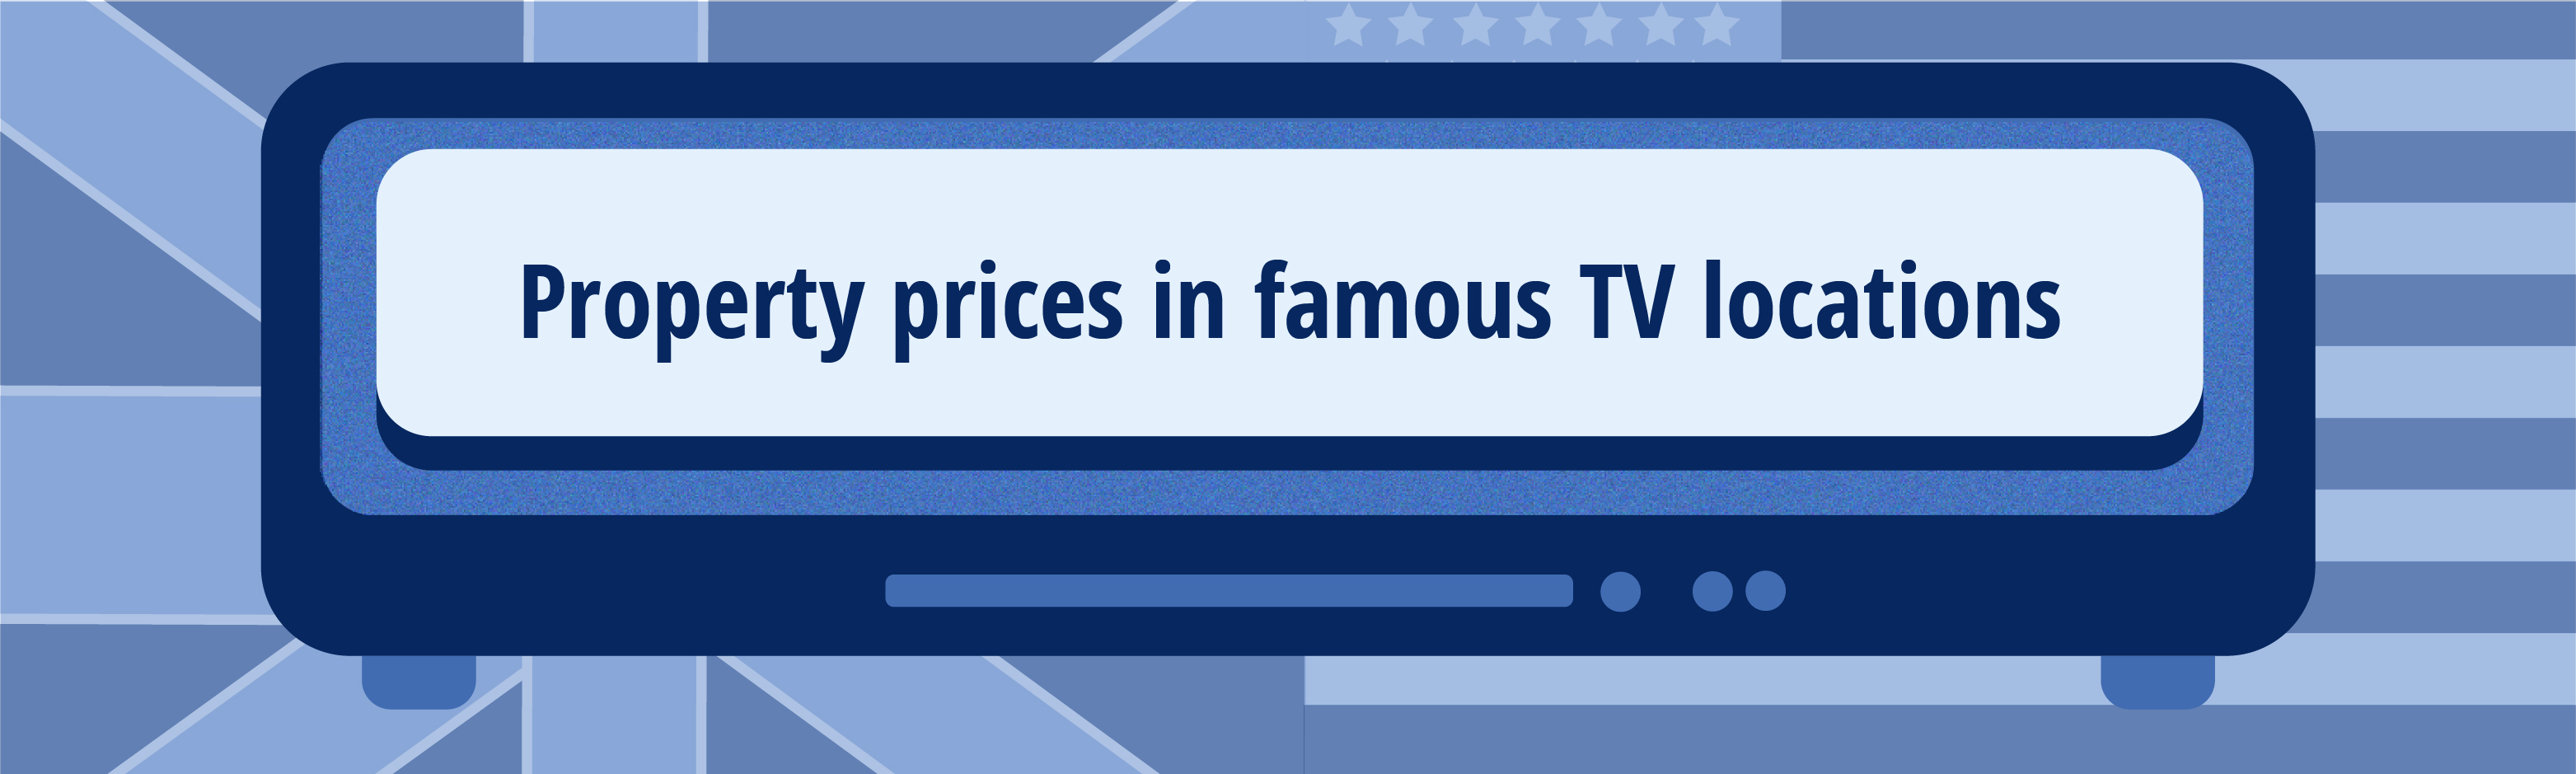 property prices in famous tv locations